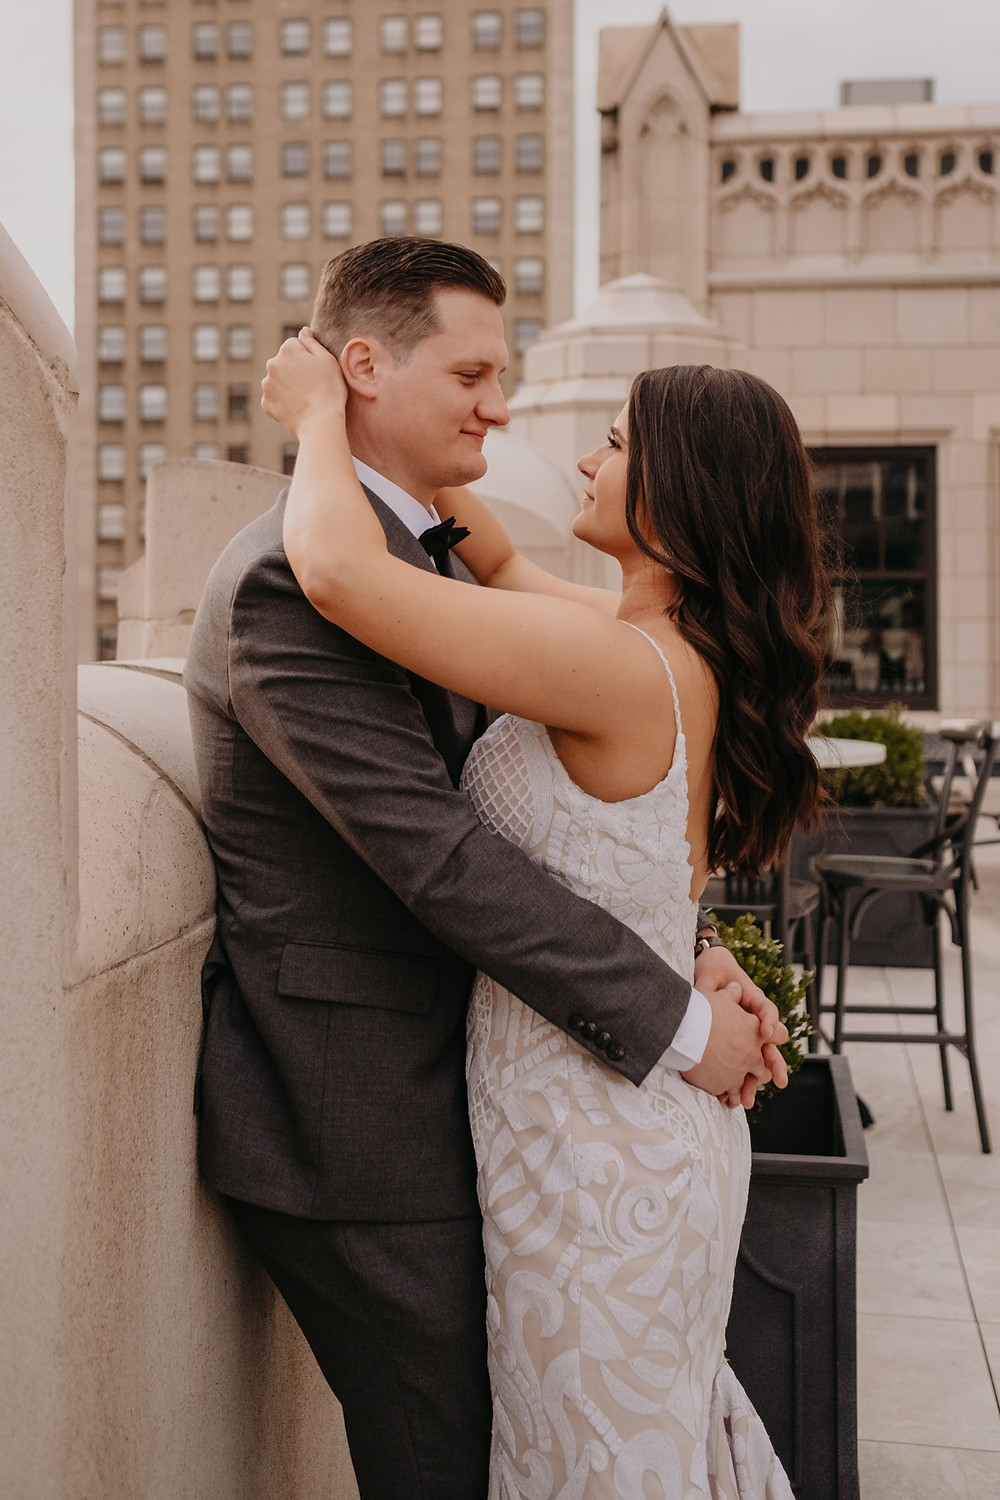 Wedding day photos on Downtown Detroit rooftop.